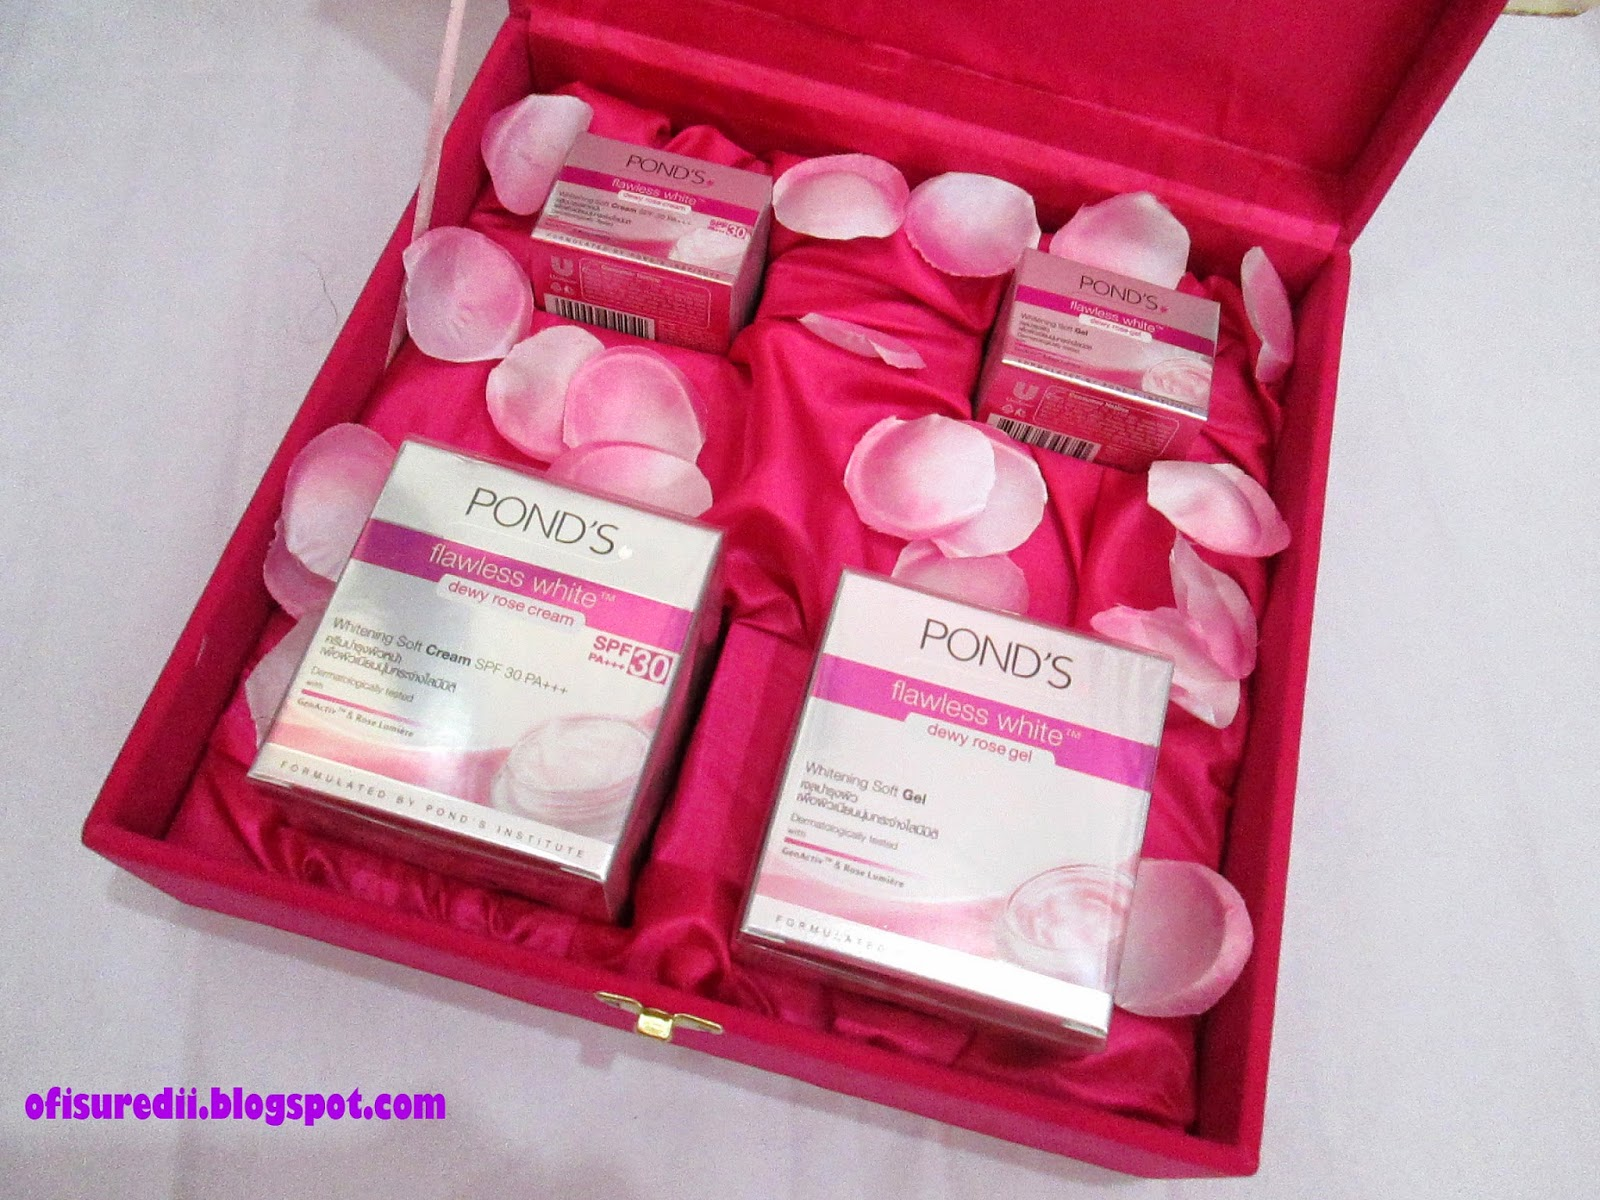 Ponds Flawless White Dewy Rose Cream Spf 30 Pa 10gr Daftar Harga Gel 50 G All Fellow Bloggers Who Are Honor To Try